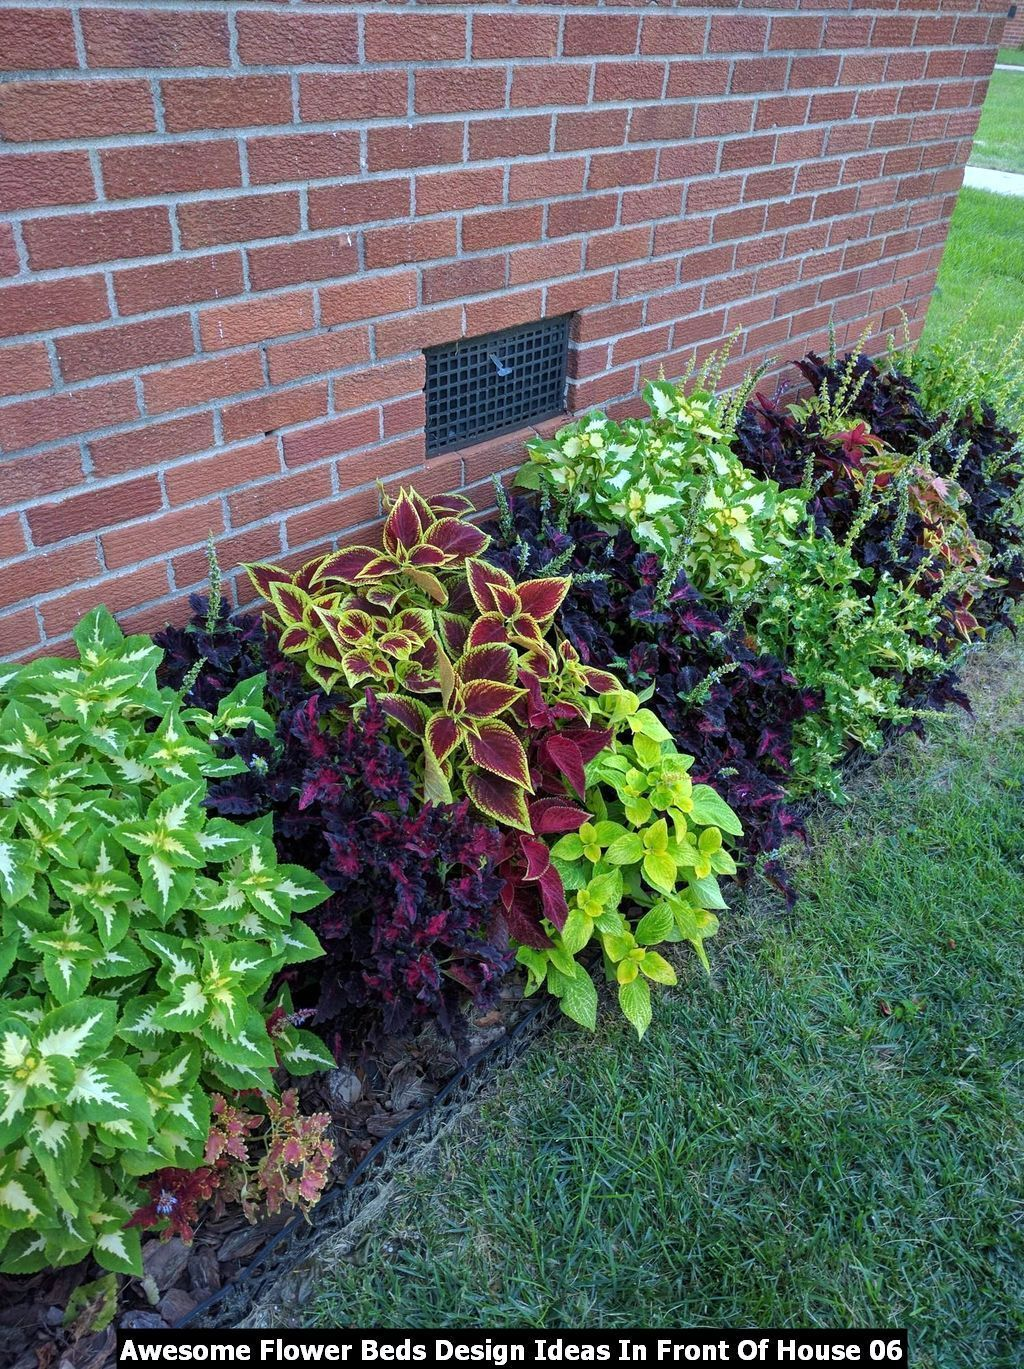 Photo of Awesome Flower Beds Design Ideas In Front Of House – Flower Beds 2020 Flower Beds 2020 – Flower Beds 2020 Flower Beds 2020